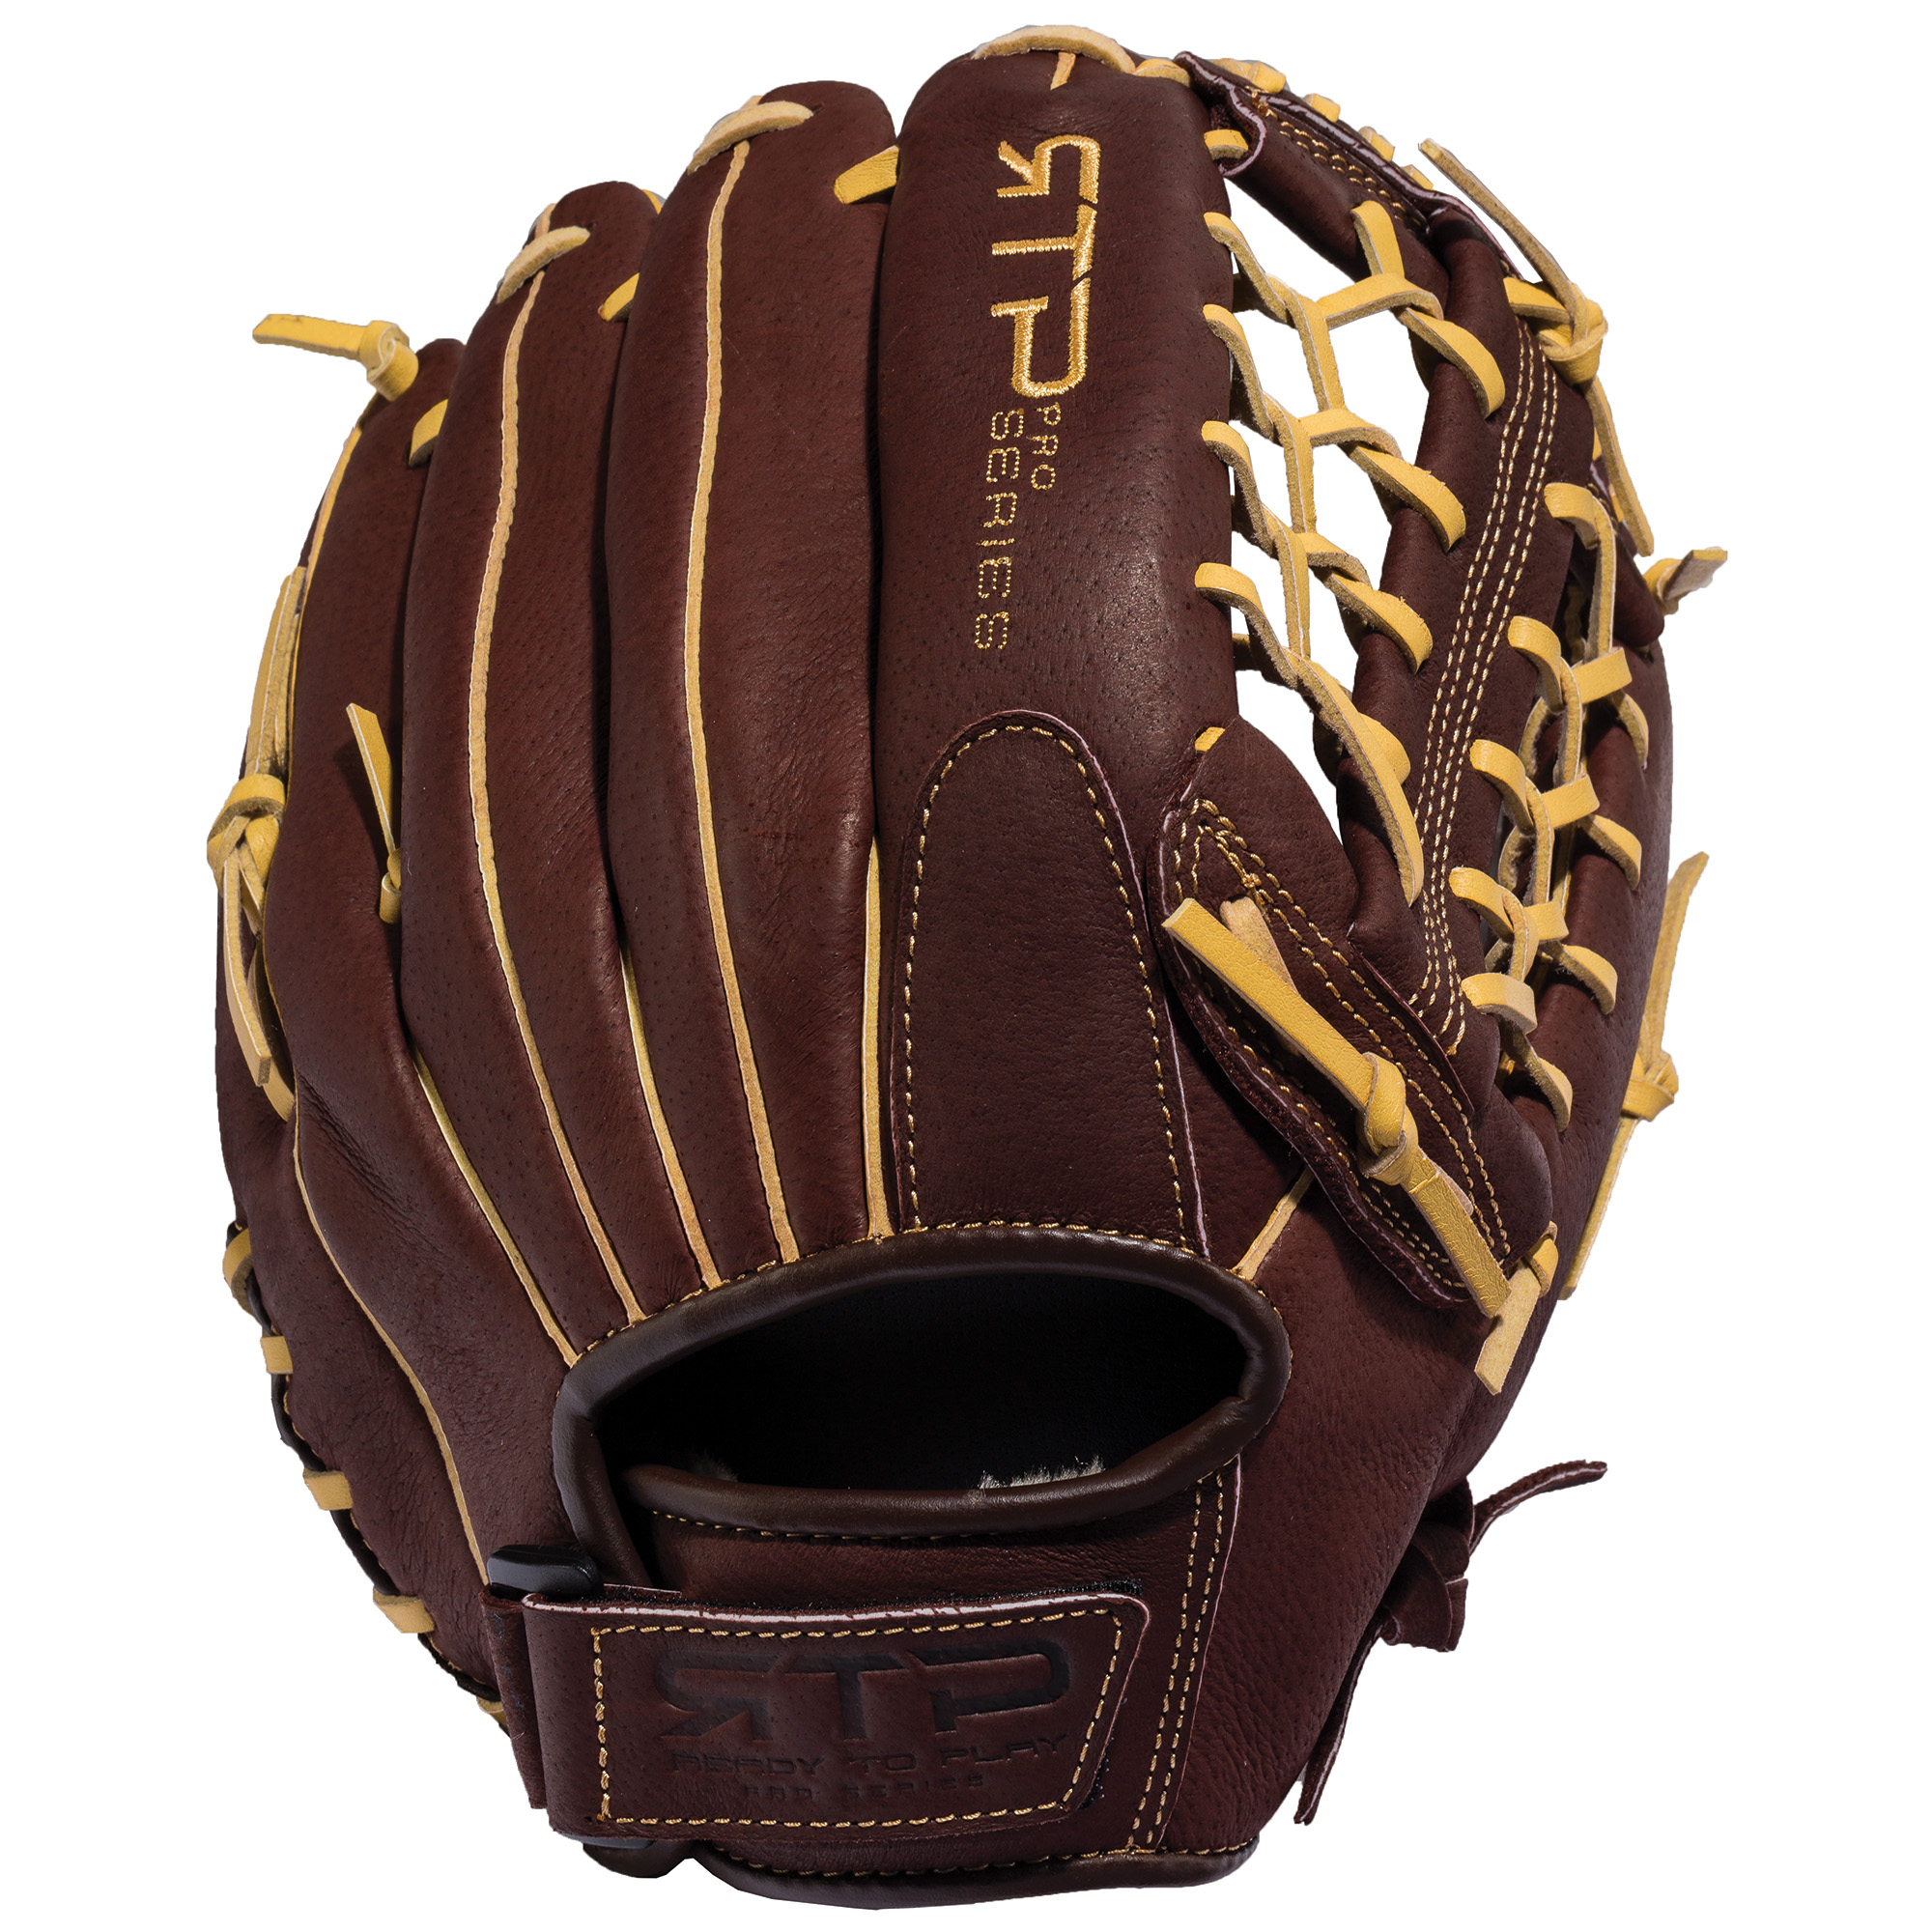 "Franklin 12"" RTP Pro Series Pigskin Leather Baseball Glove, Right Hand Throw"